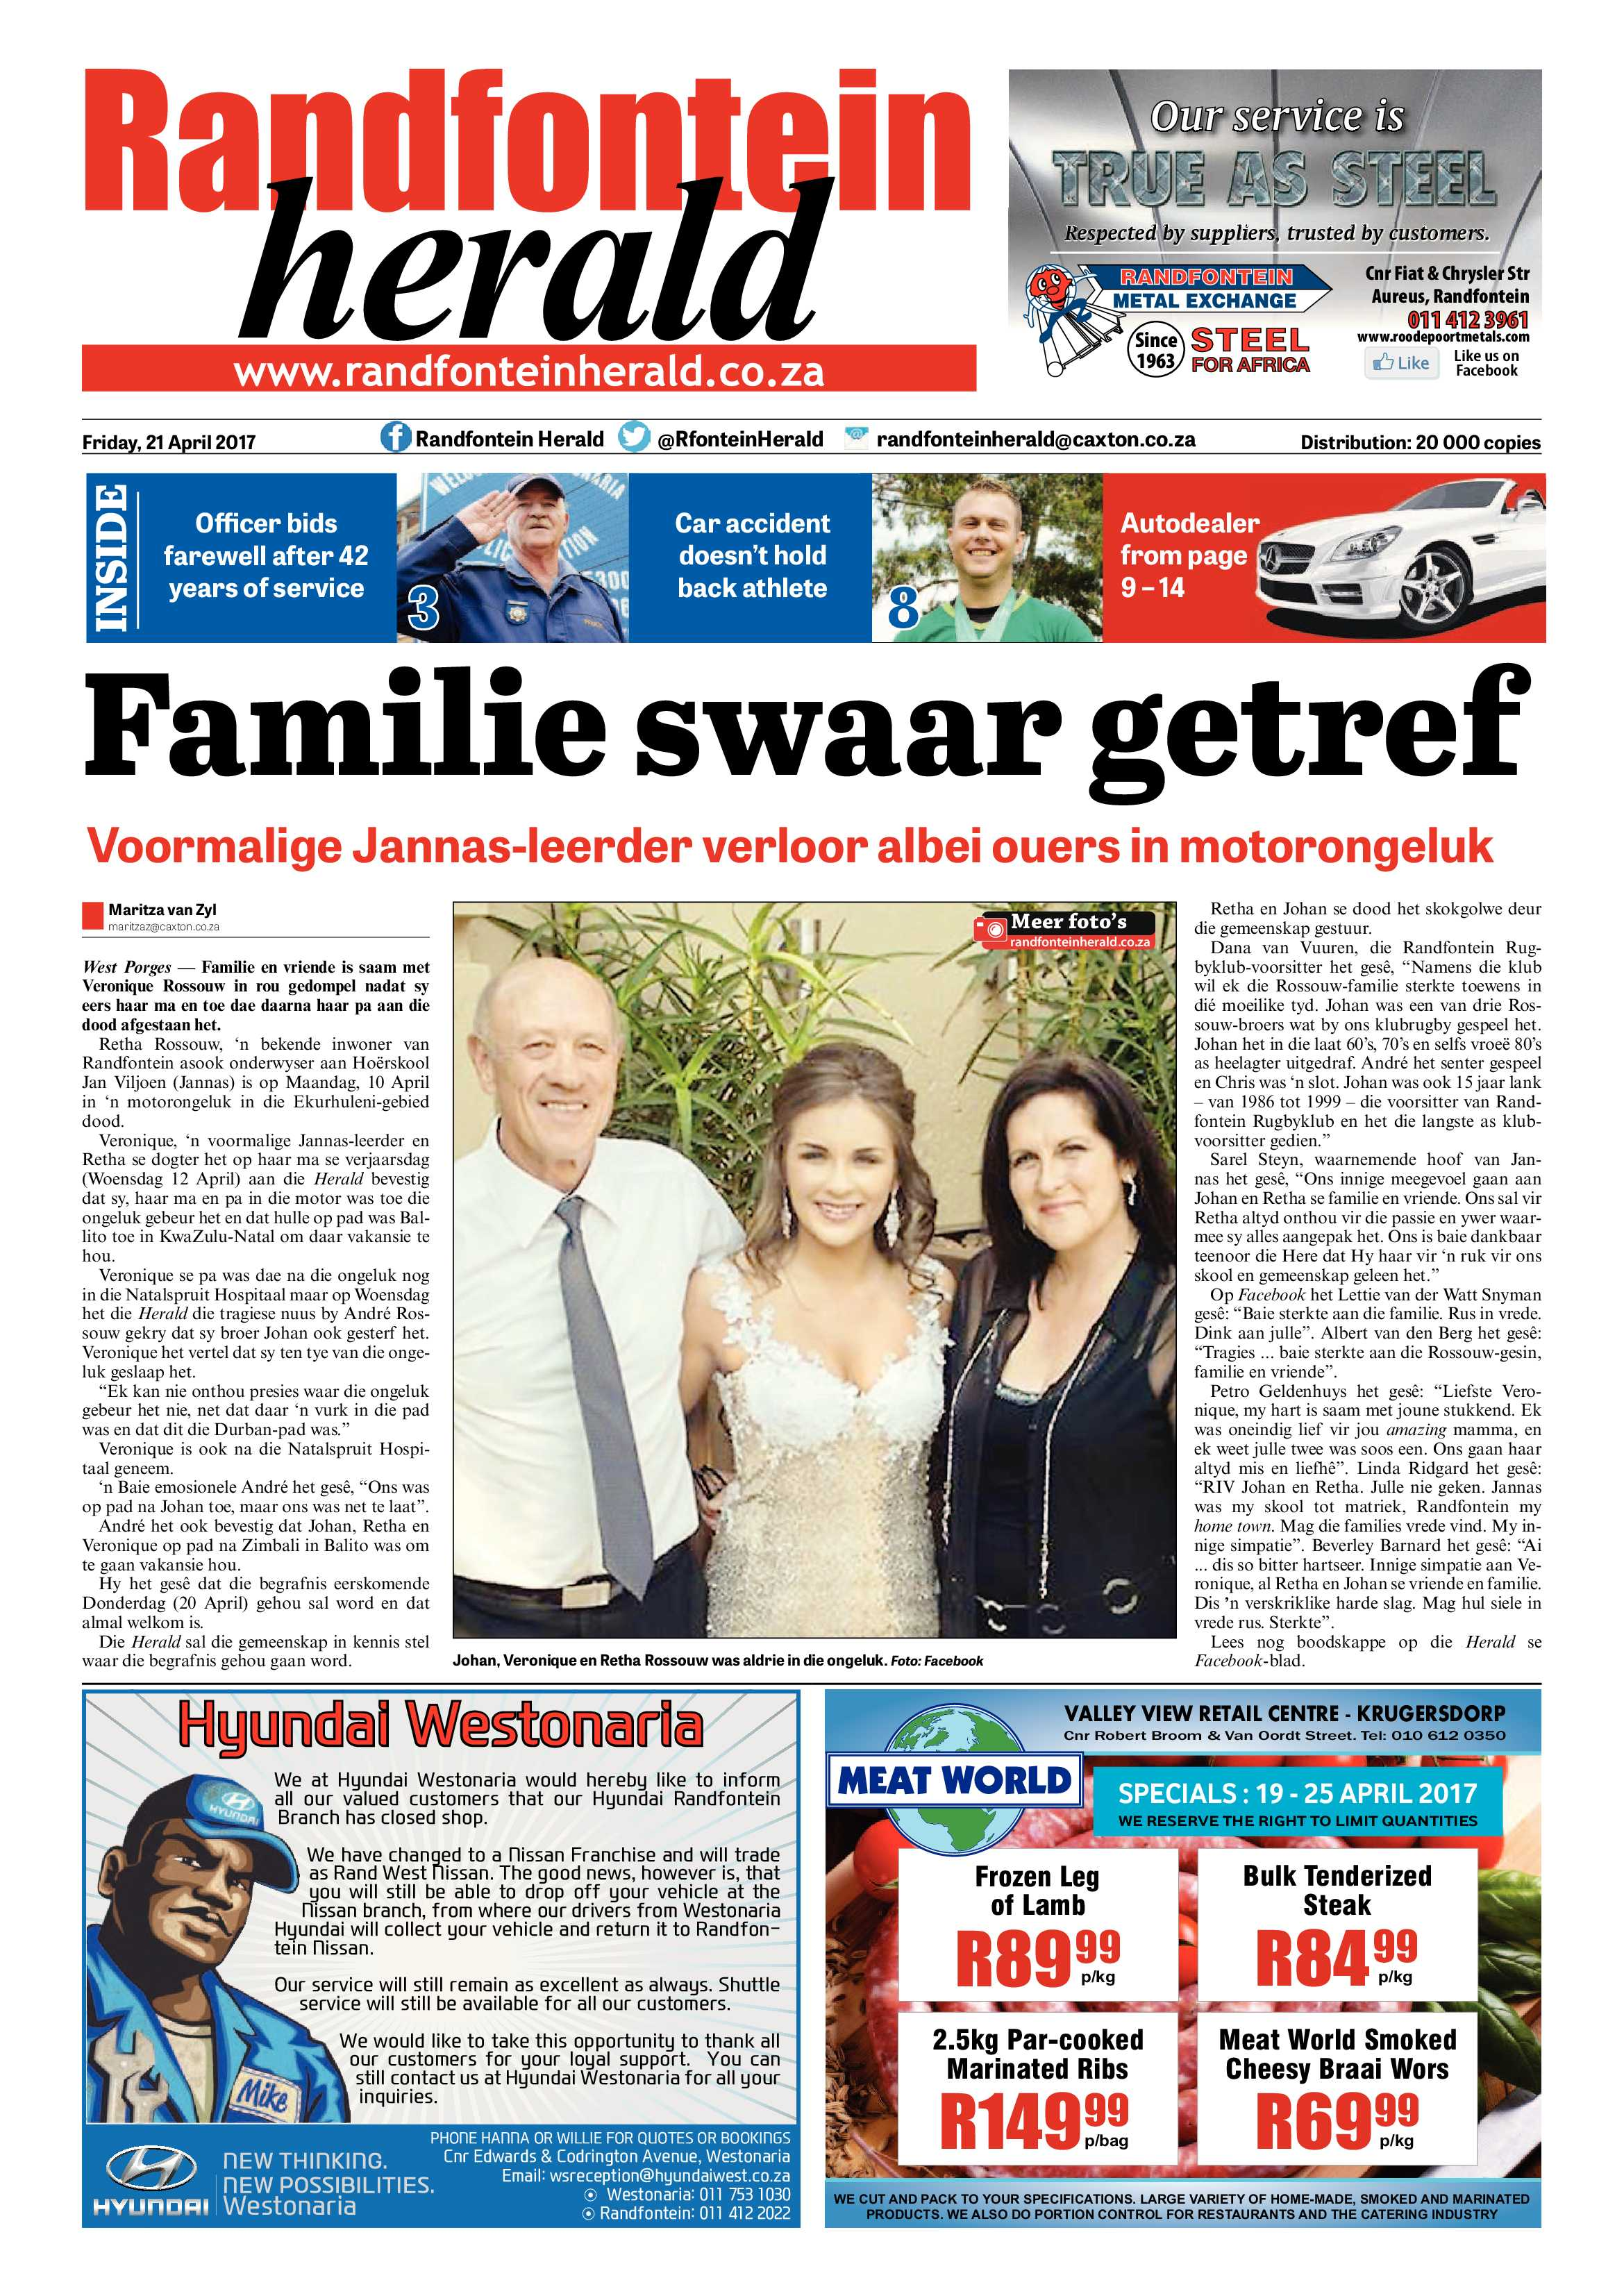 randfontein-herald-21-april-2017-epapers-page-1